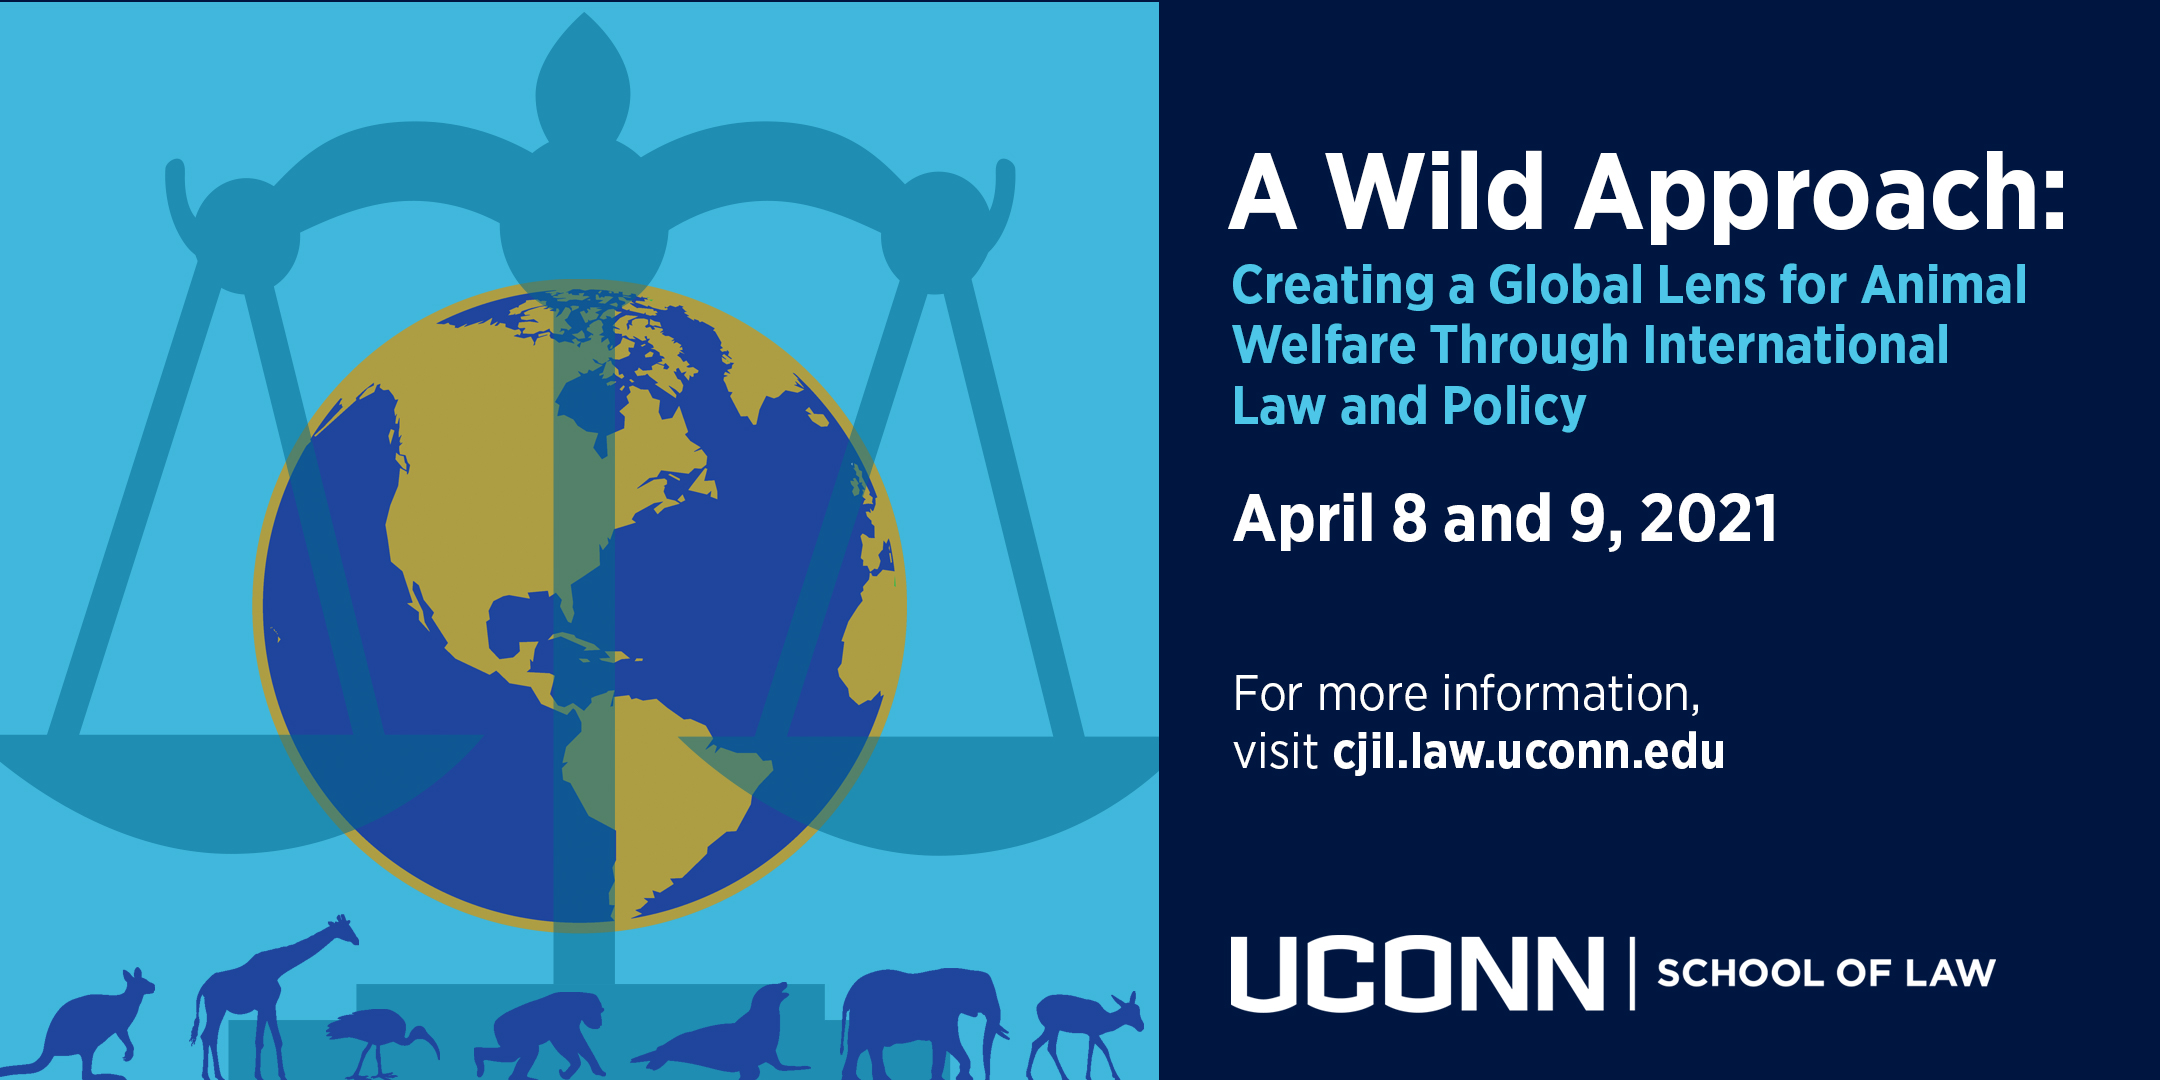 A Wild Approach: Creating a Global Lens for Animals Welfare Through Law and Policy, April 8 and 9, 2021; For more information, visit cjil.law.uconn.edu; image shows globe, scales of justice, and animal silhouettes